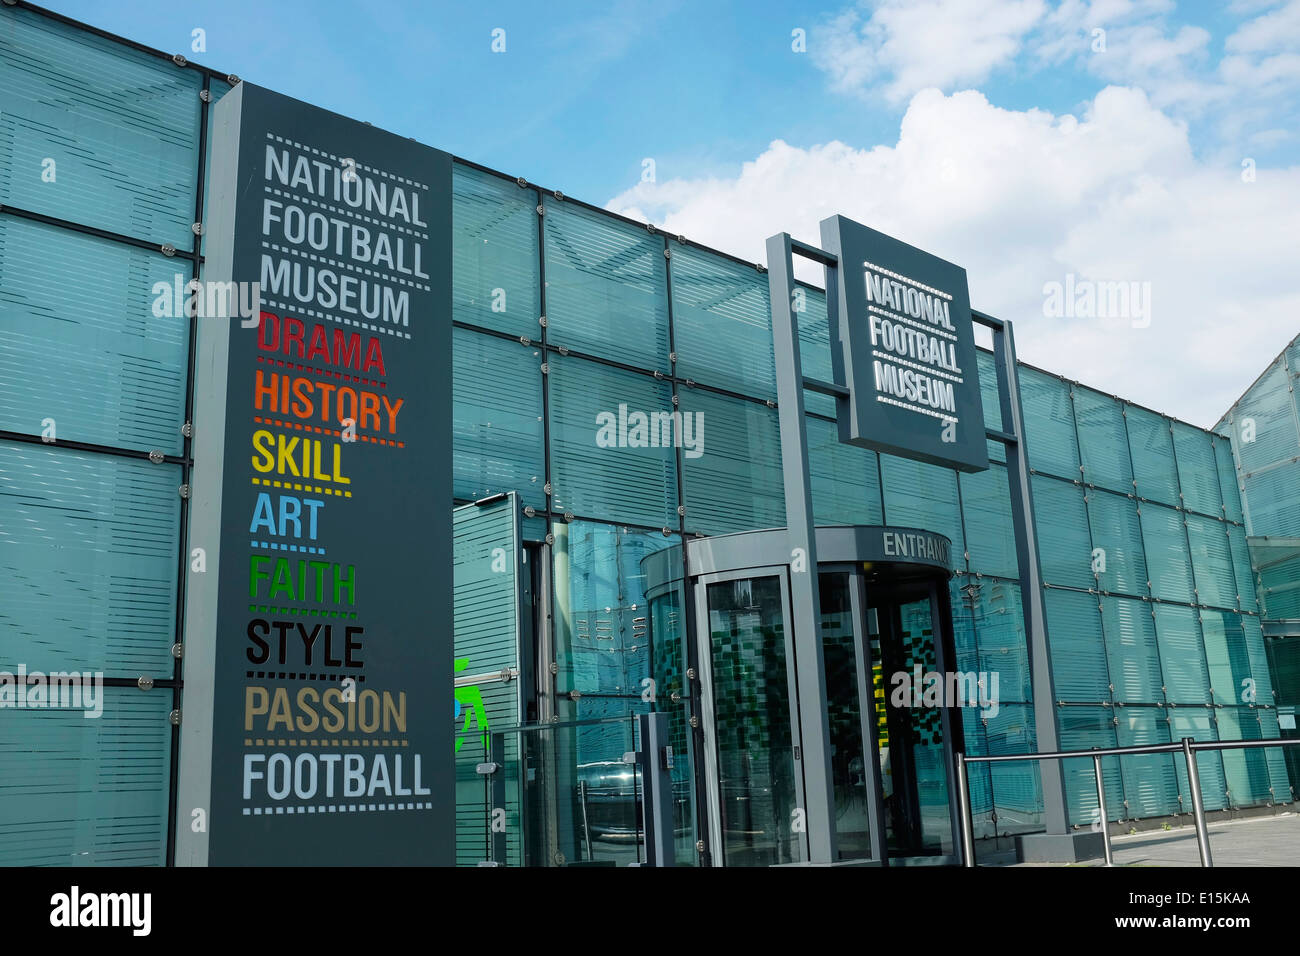 The entrance to the National Football Museum in Manchester city centre UK - Stock Image